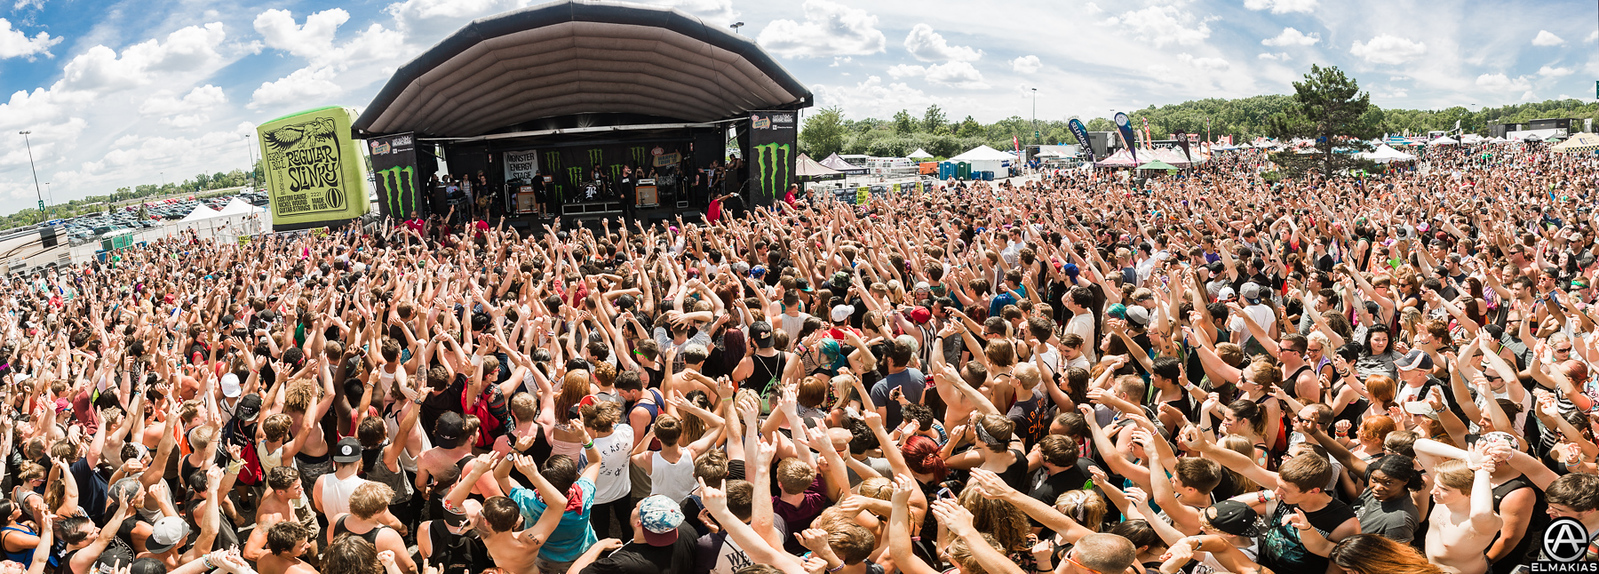 Beartooth live at Vans Warped Tour 2015 by Adam Elmakias